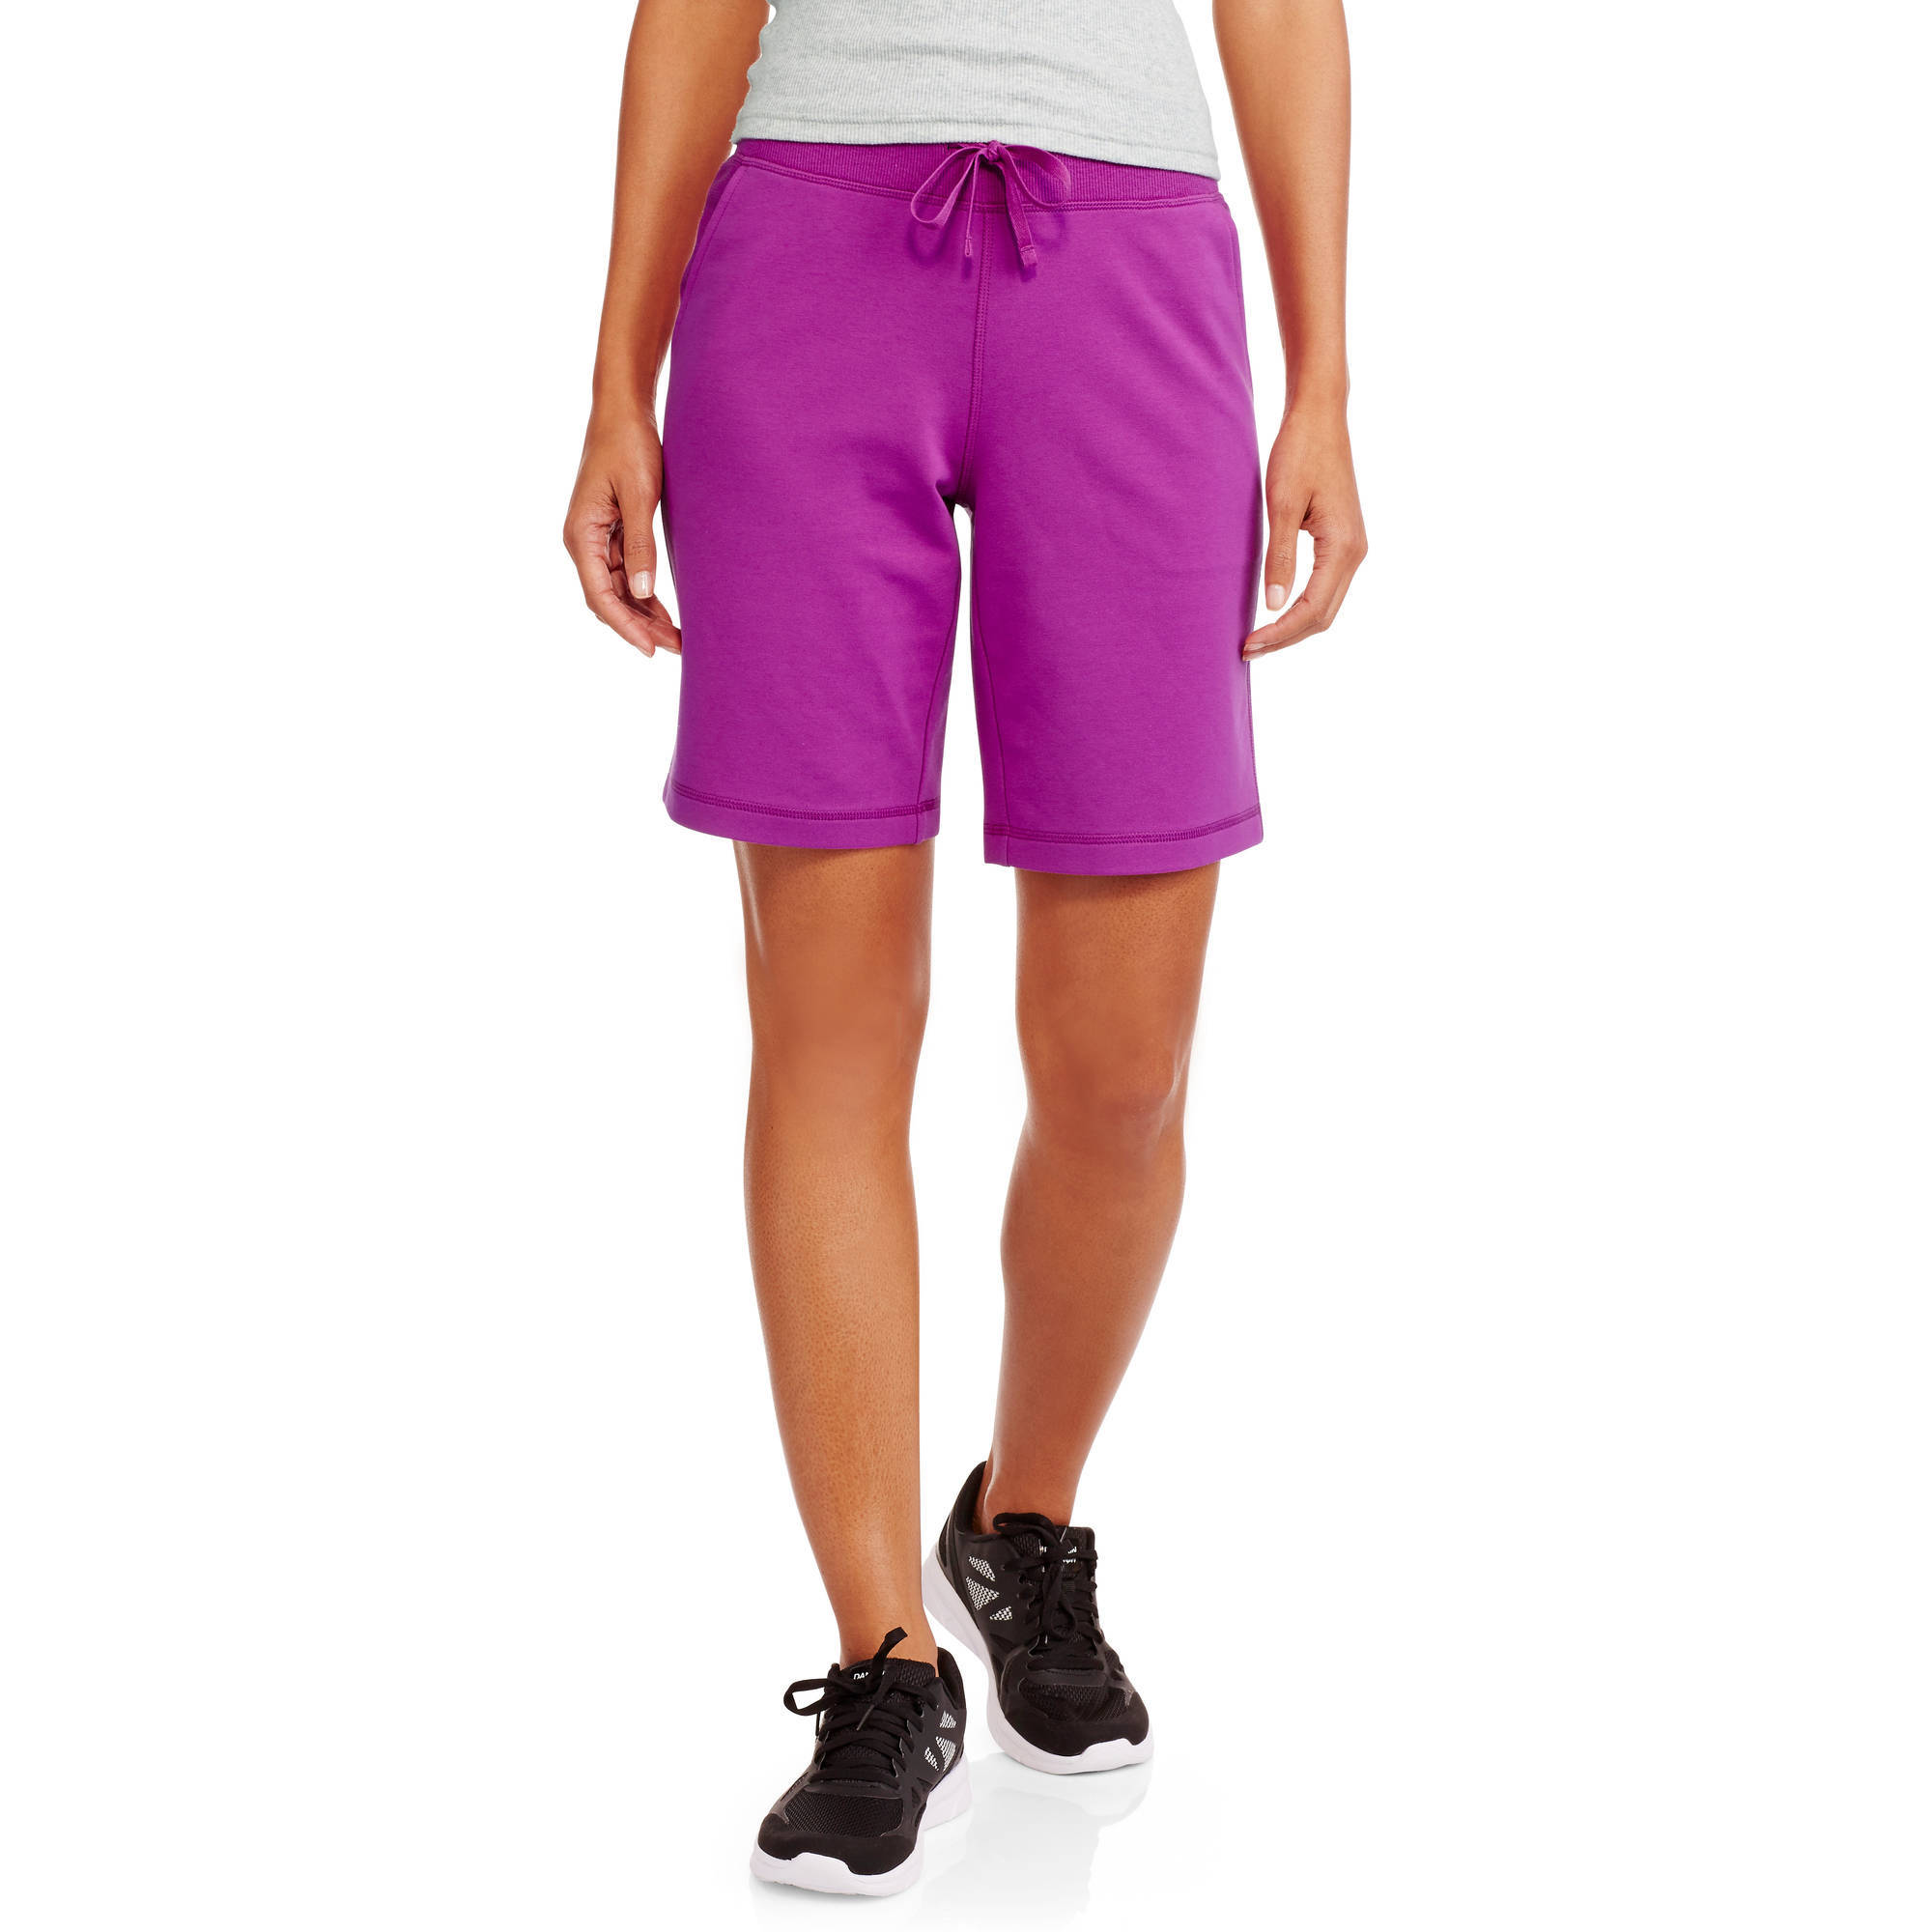 athletic works womenu0027s active french terry bermuda shorts jkbljzb